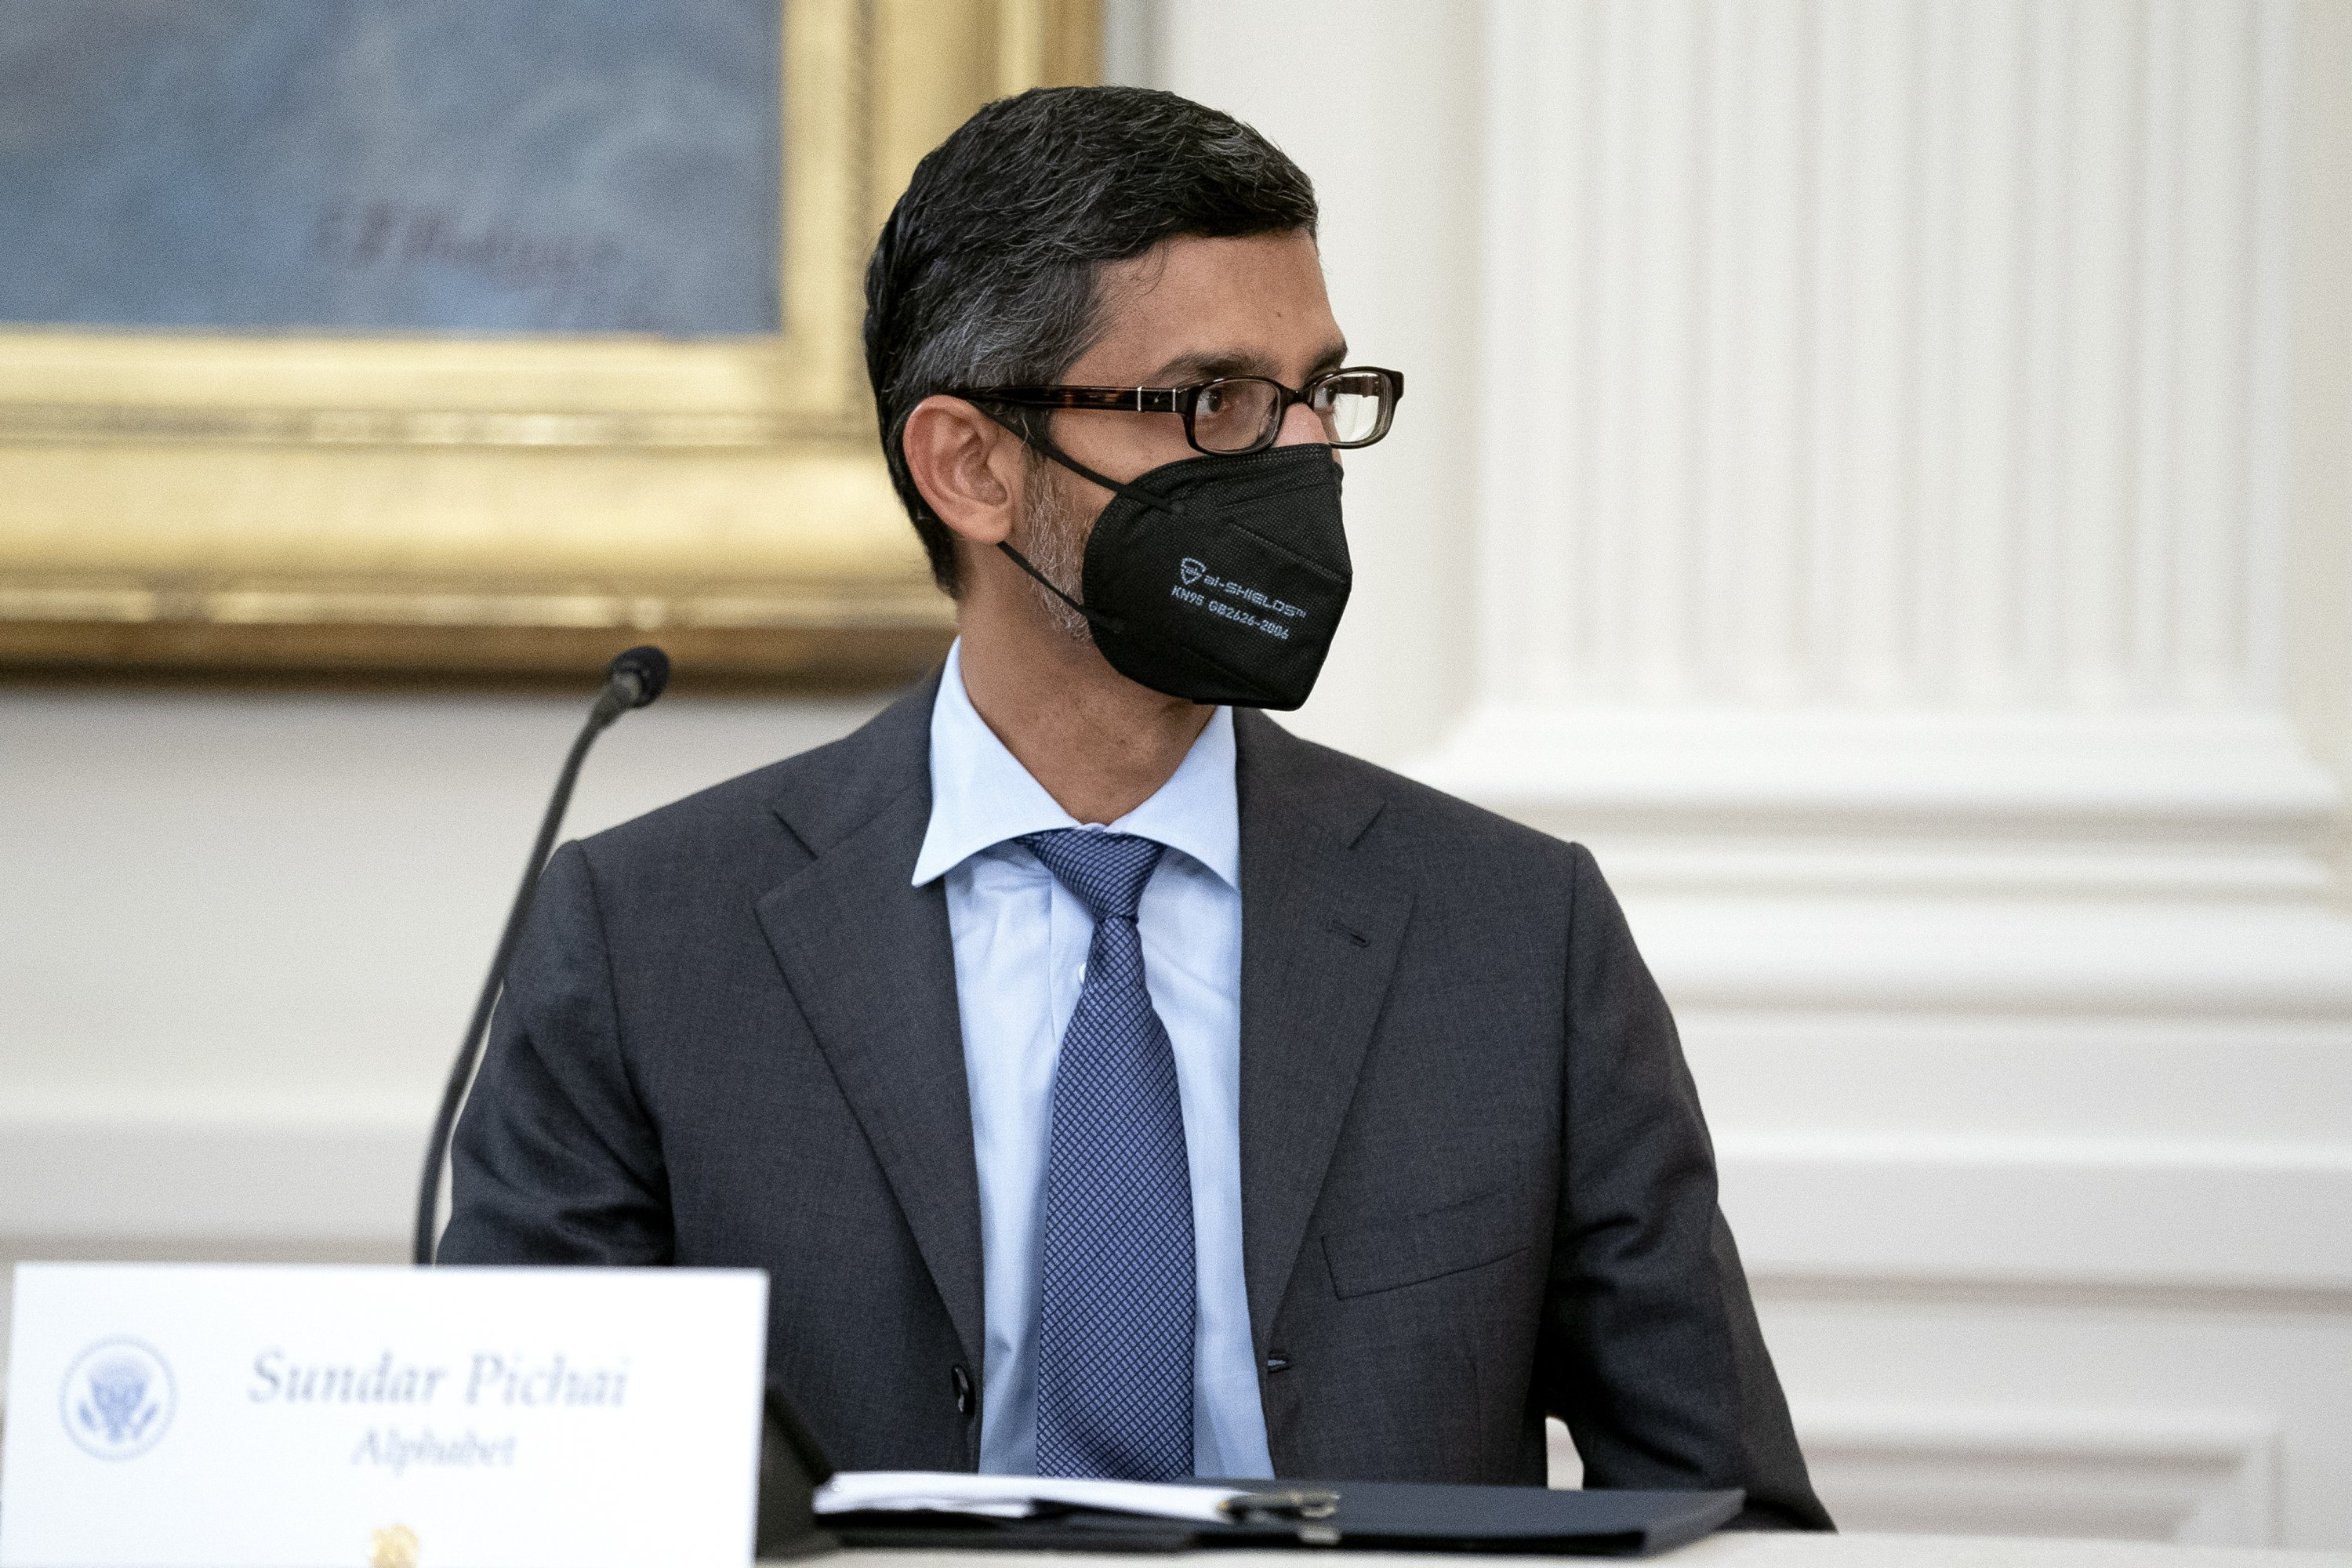 Alphabet CEO Sundar Picha attends a meeting with U.S. President Joe Biden, not pictured, in the East Room of the White House, in Washington, U.S., Aug. 25, 2021. (EPA Photo)